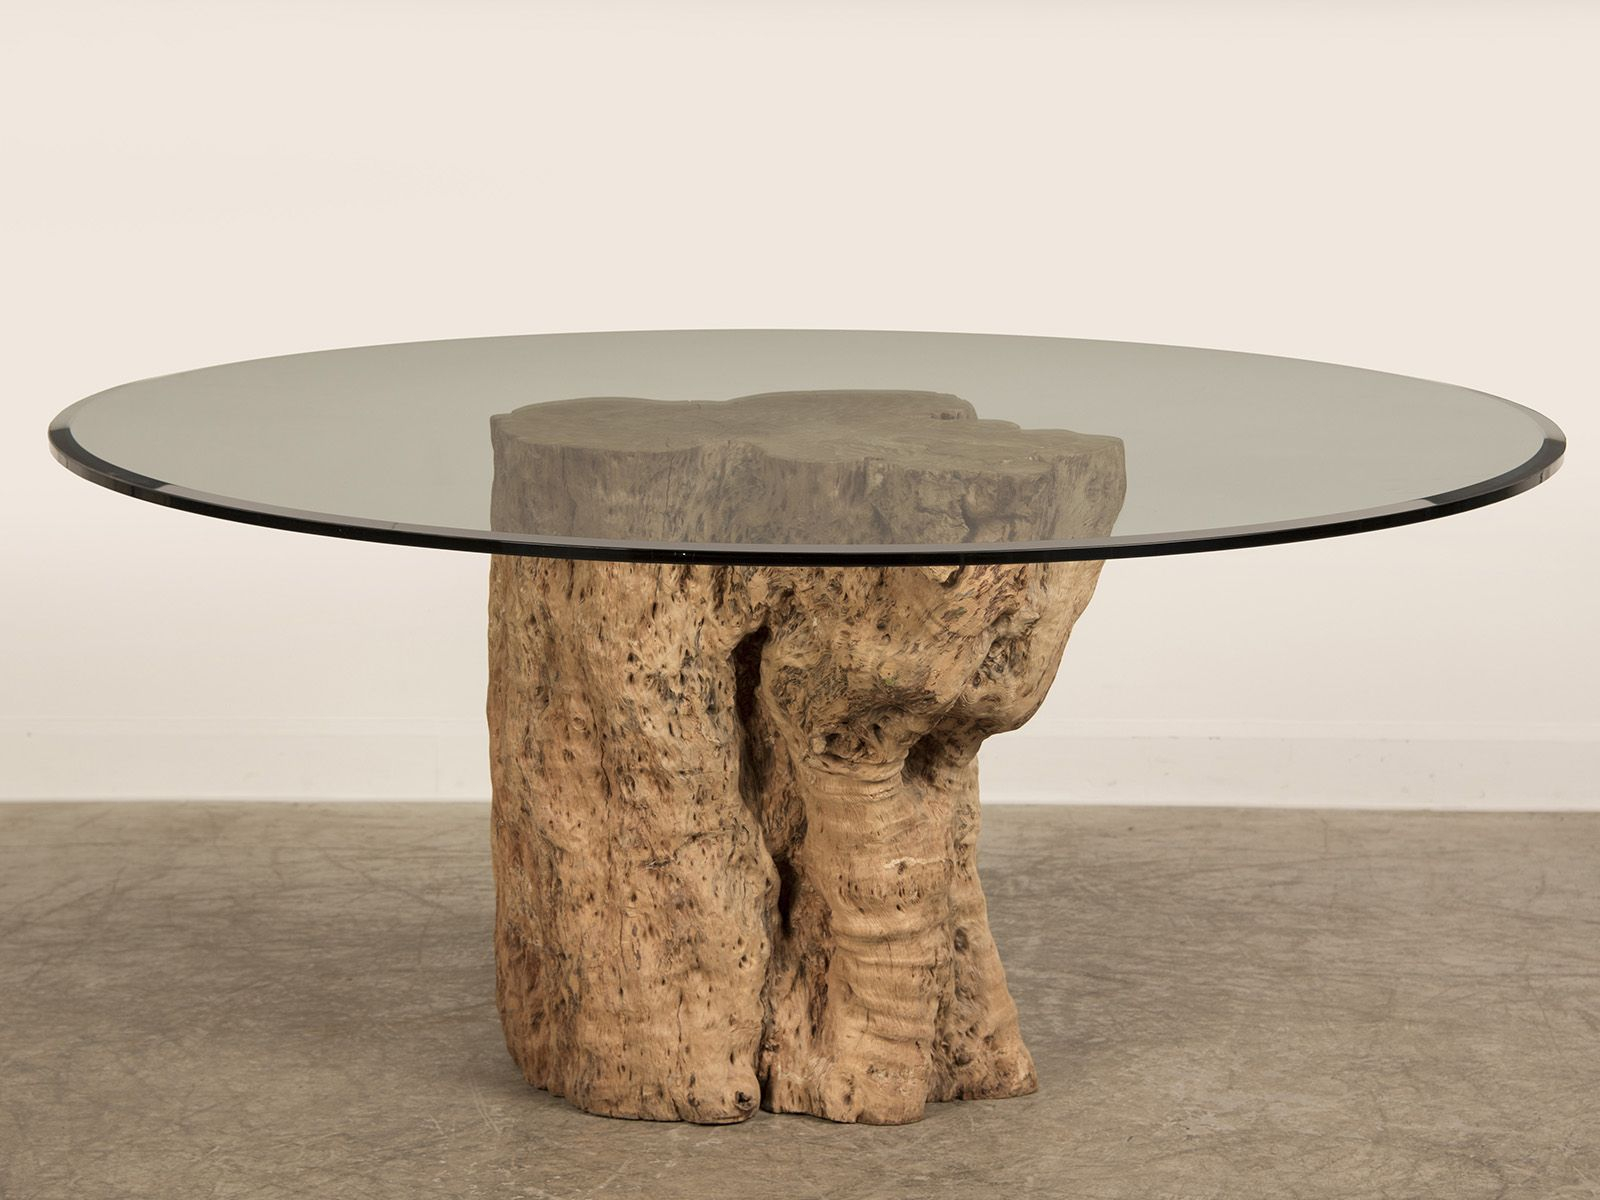 Awesome Teak Tree Trunk Table With Circled Glass Top As Inspiring with sizing 1600 X 1200